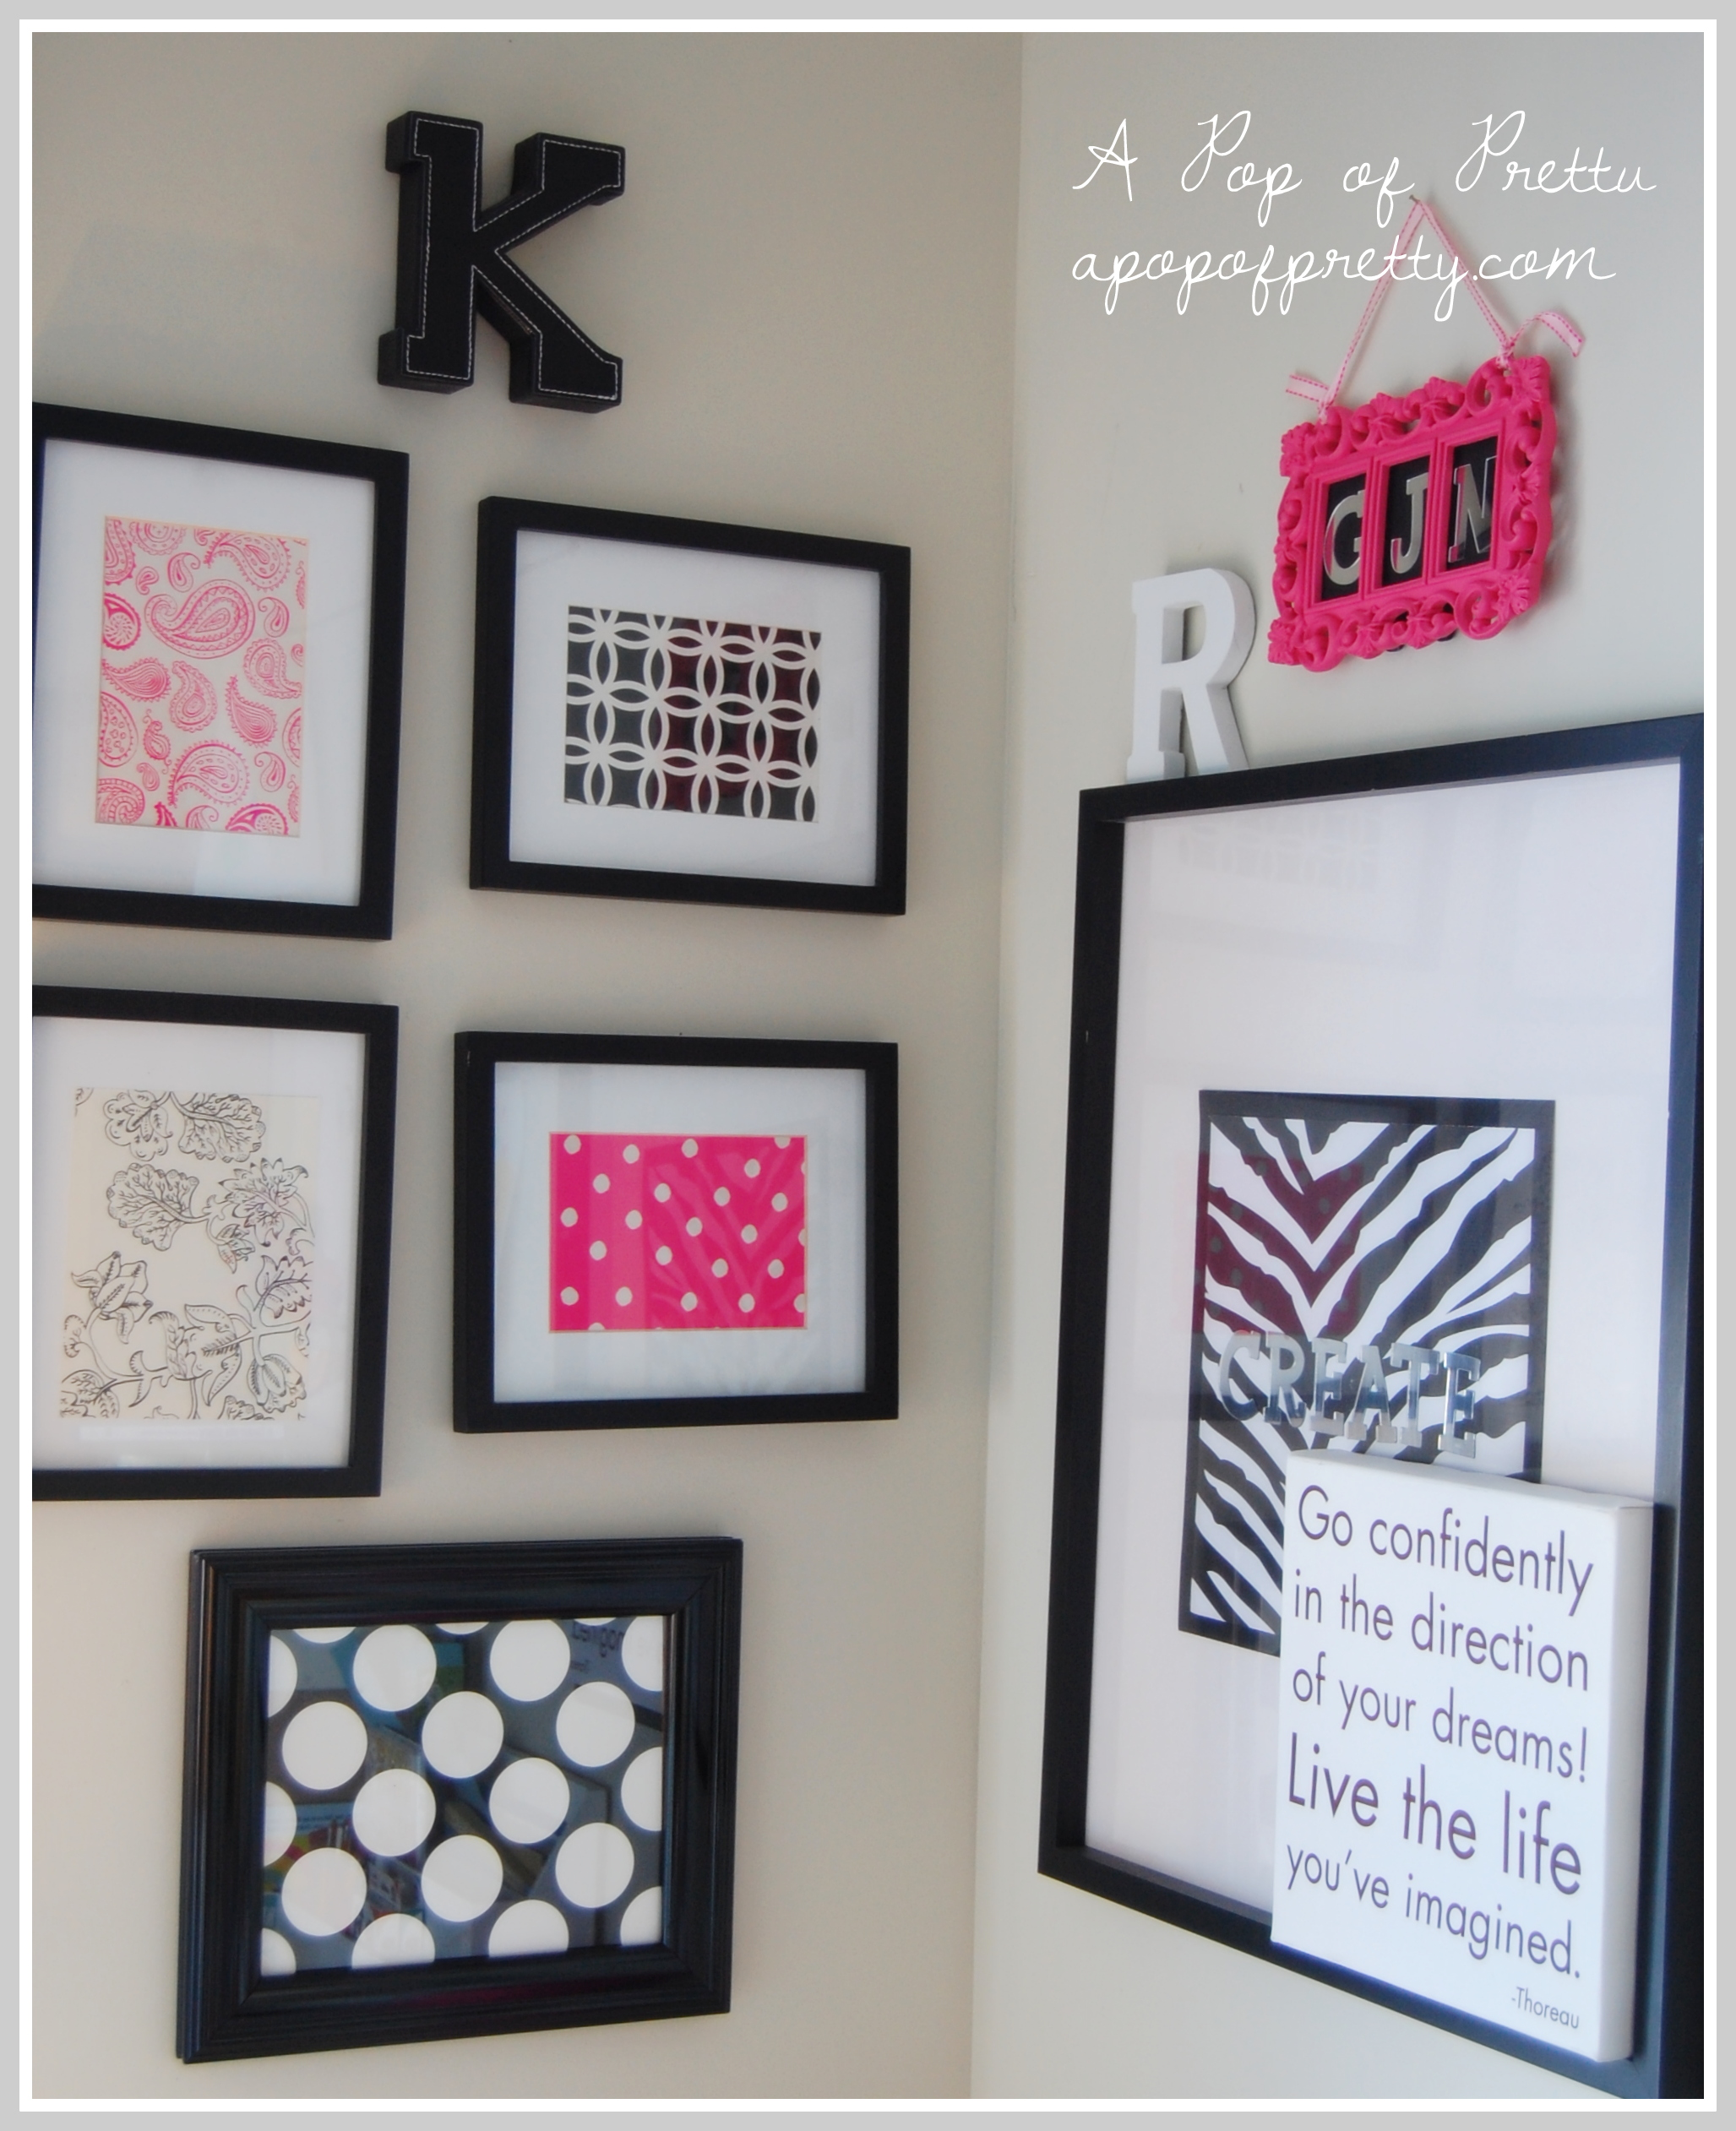 Lovely  diy art ideas How to create artwork yourself without being an artist